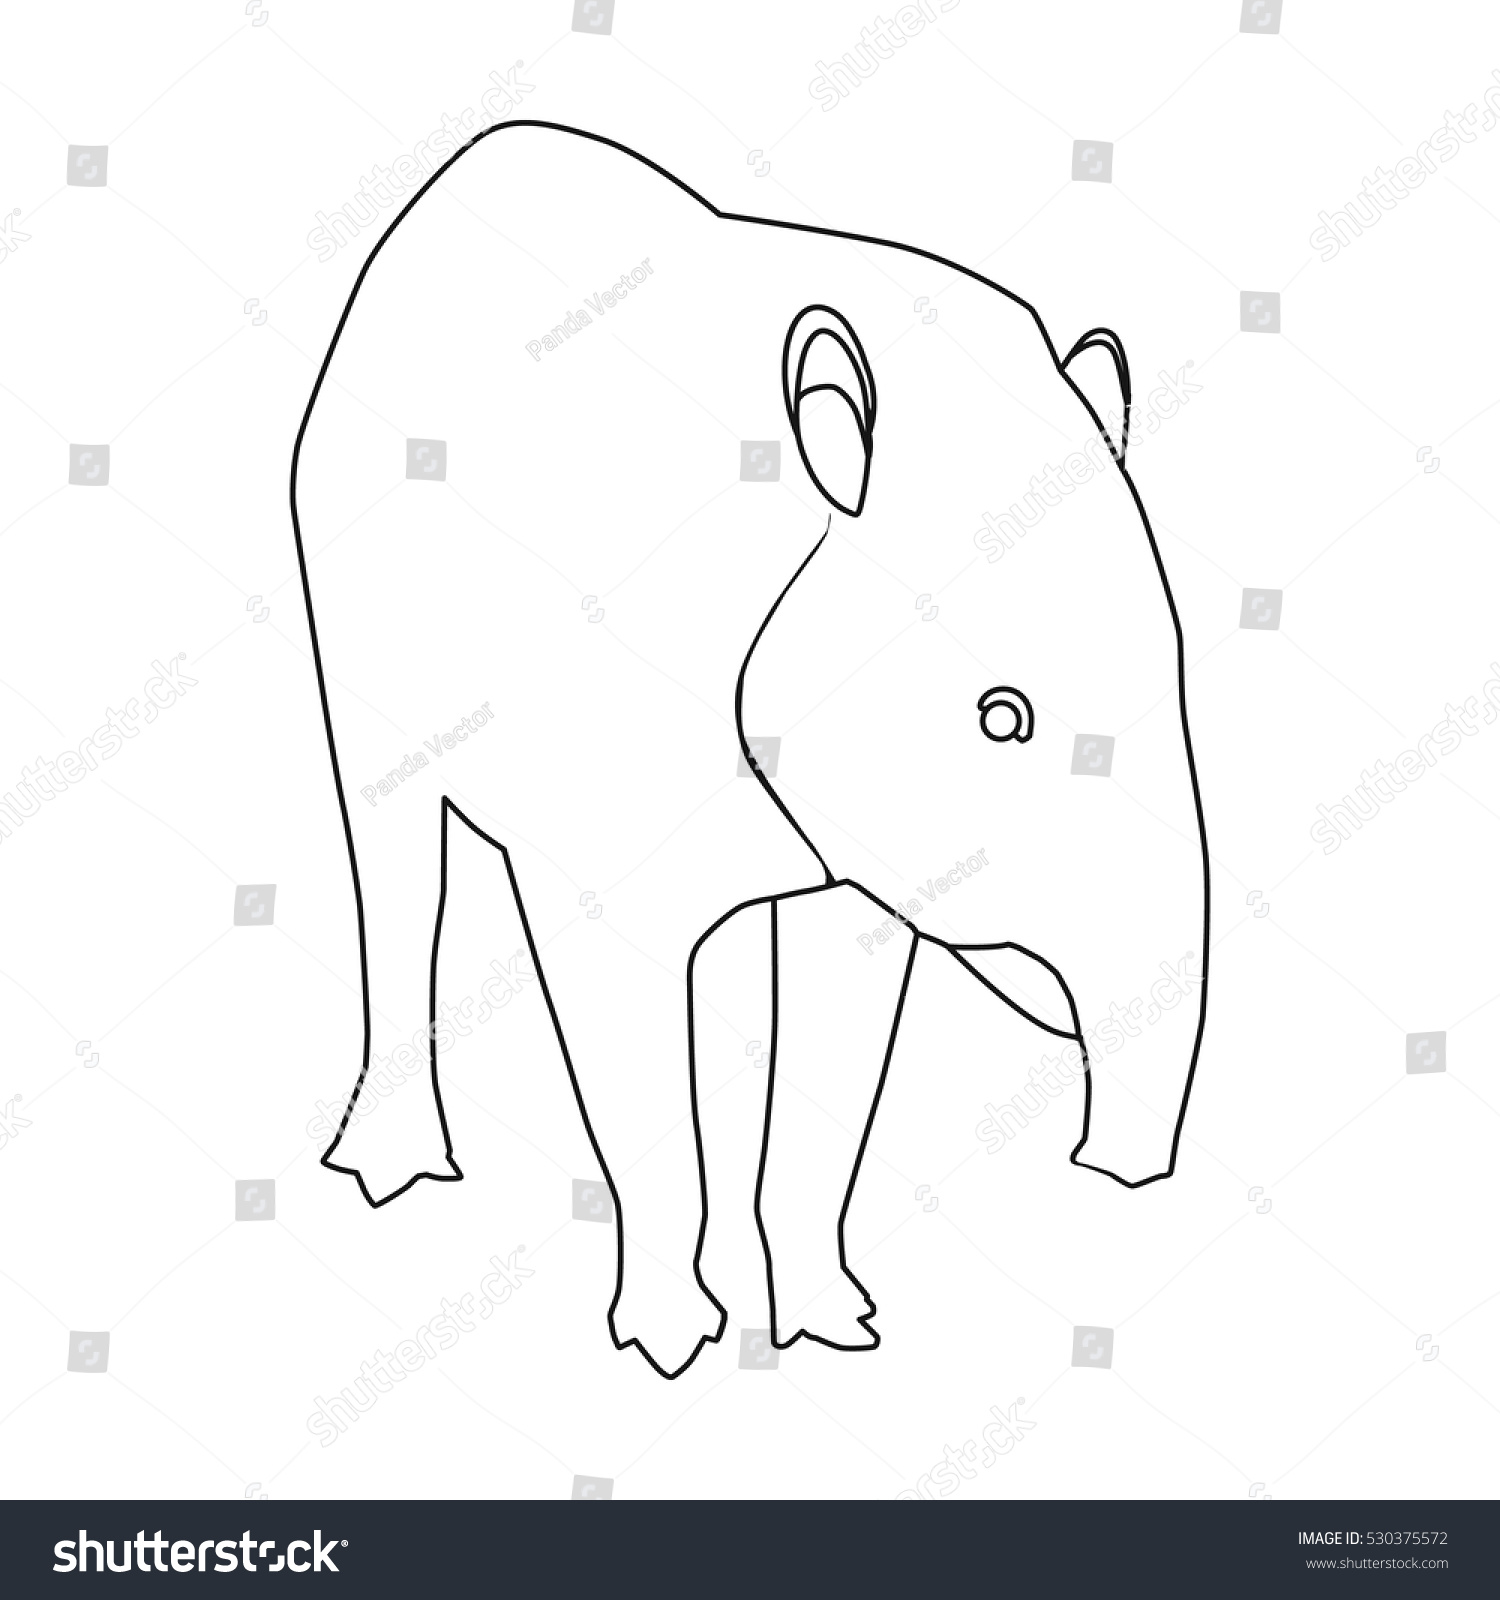 Mexican tapir icon outline style isolated stock vector 530375572 mexican tapir icon in outline style isolated on white background mexico country symbol stock vector biocorpaavc